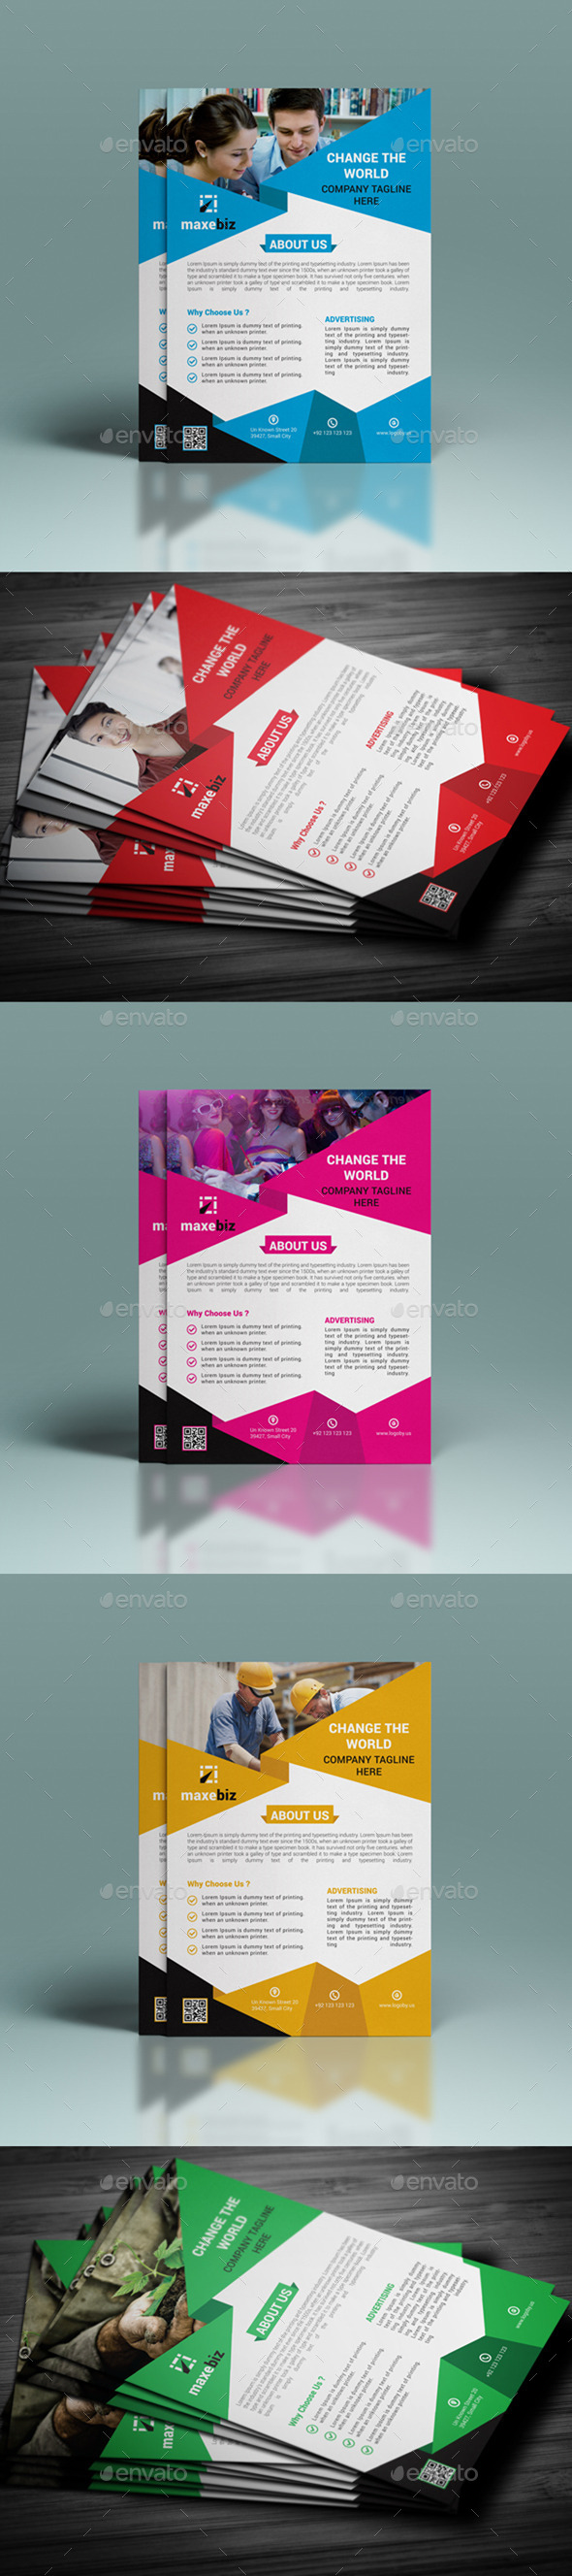 GraphicRiver Corporate Flyer Template 11778491